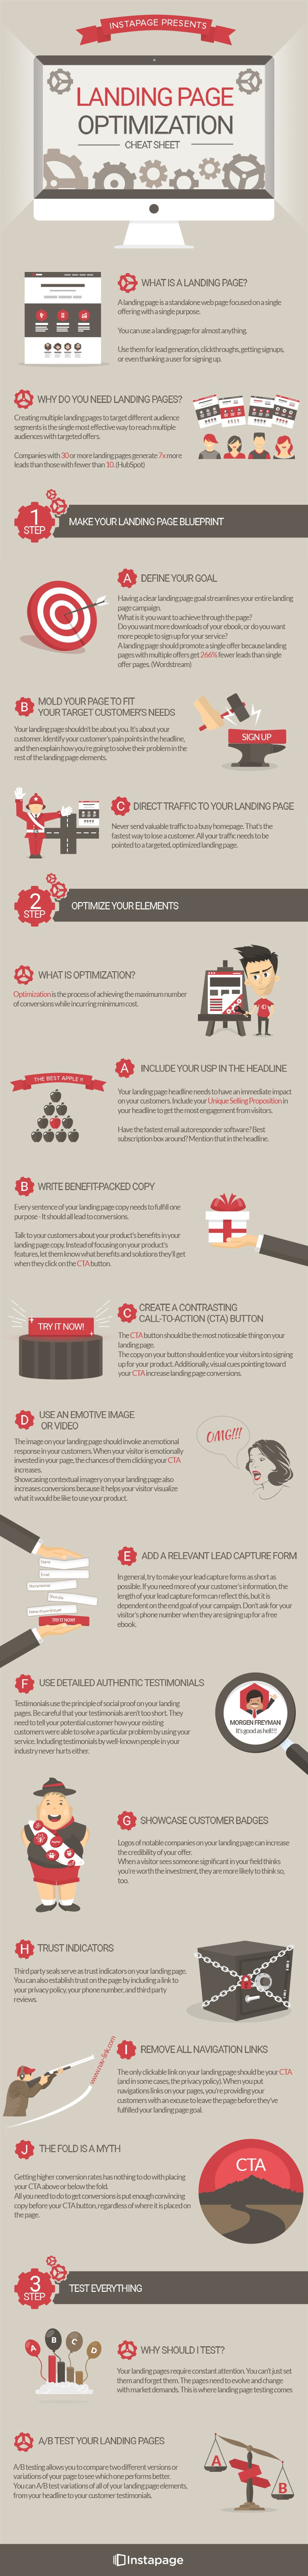 The Ultimate Landing Page Optimisation Cheat Sheet